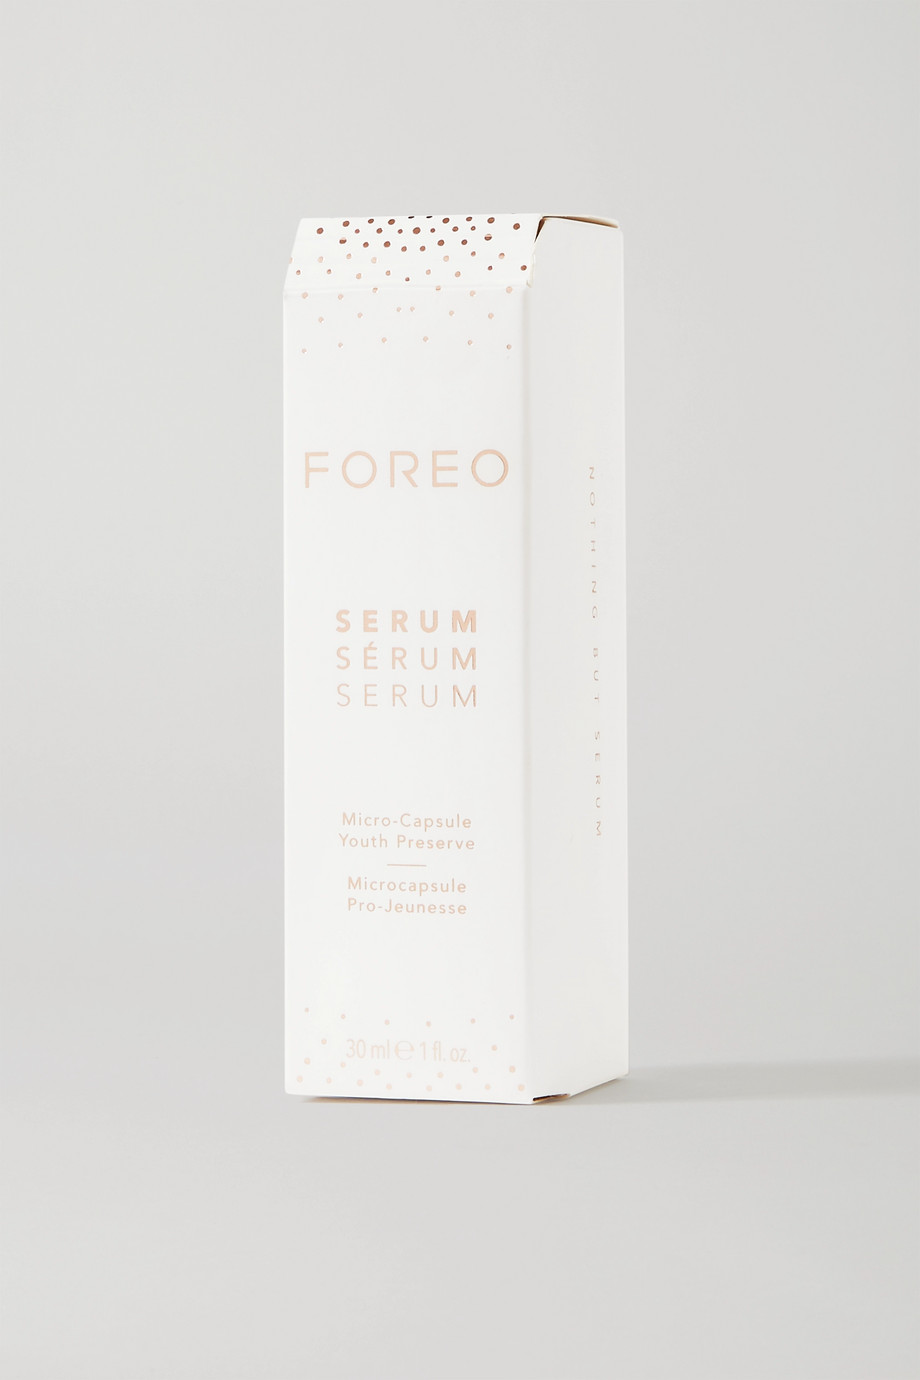 FOREO Serum Serum Serum, 30ml